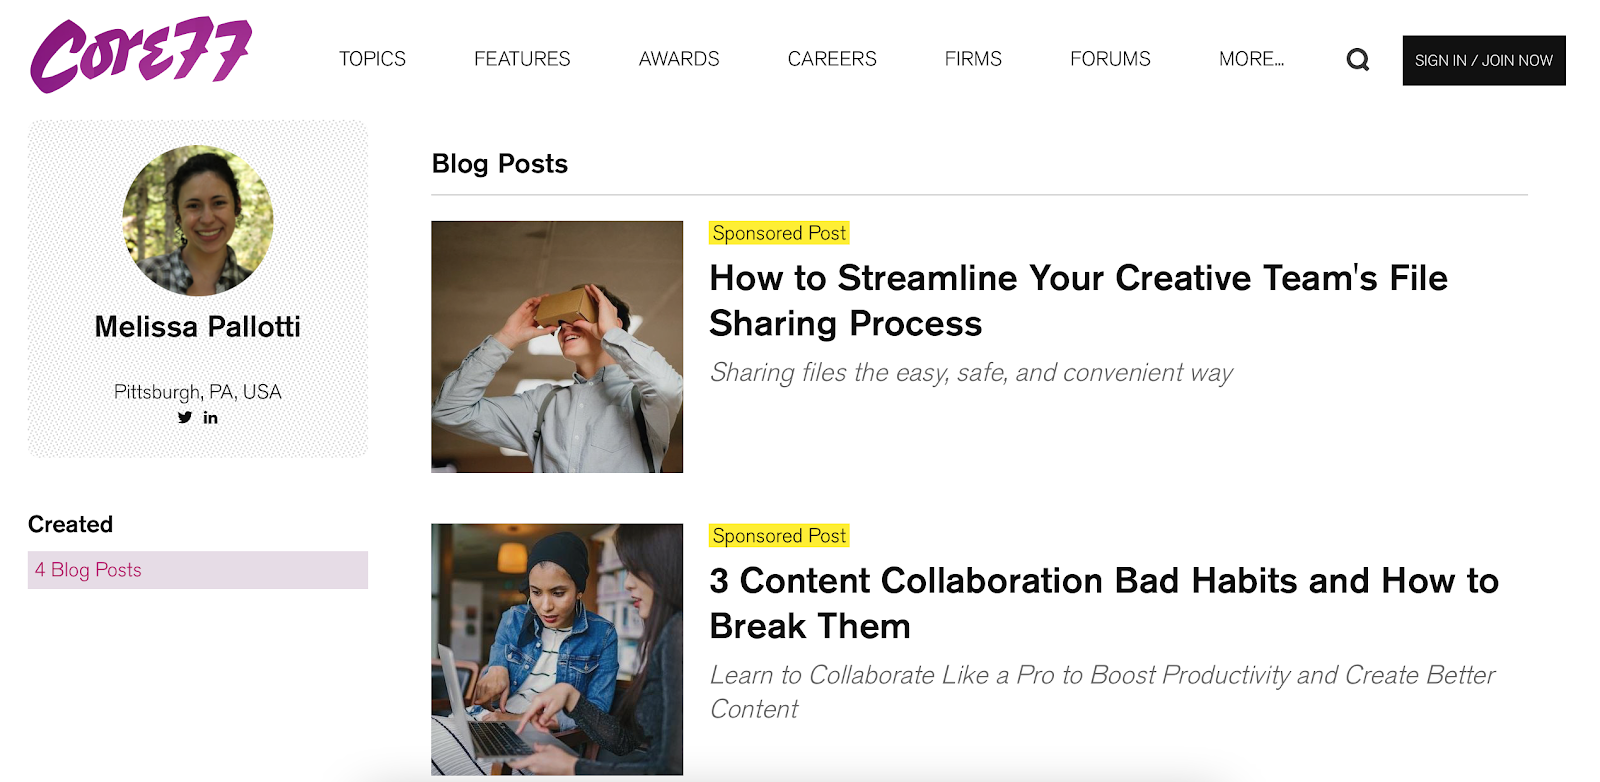 sponsored content and guest posts on core77